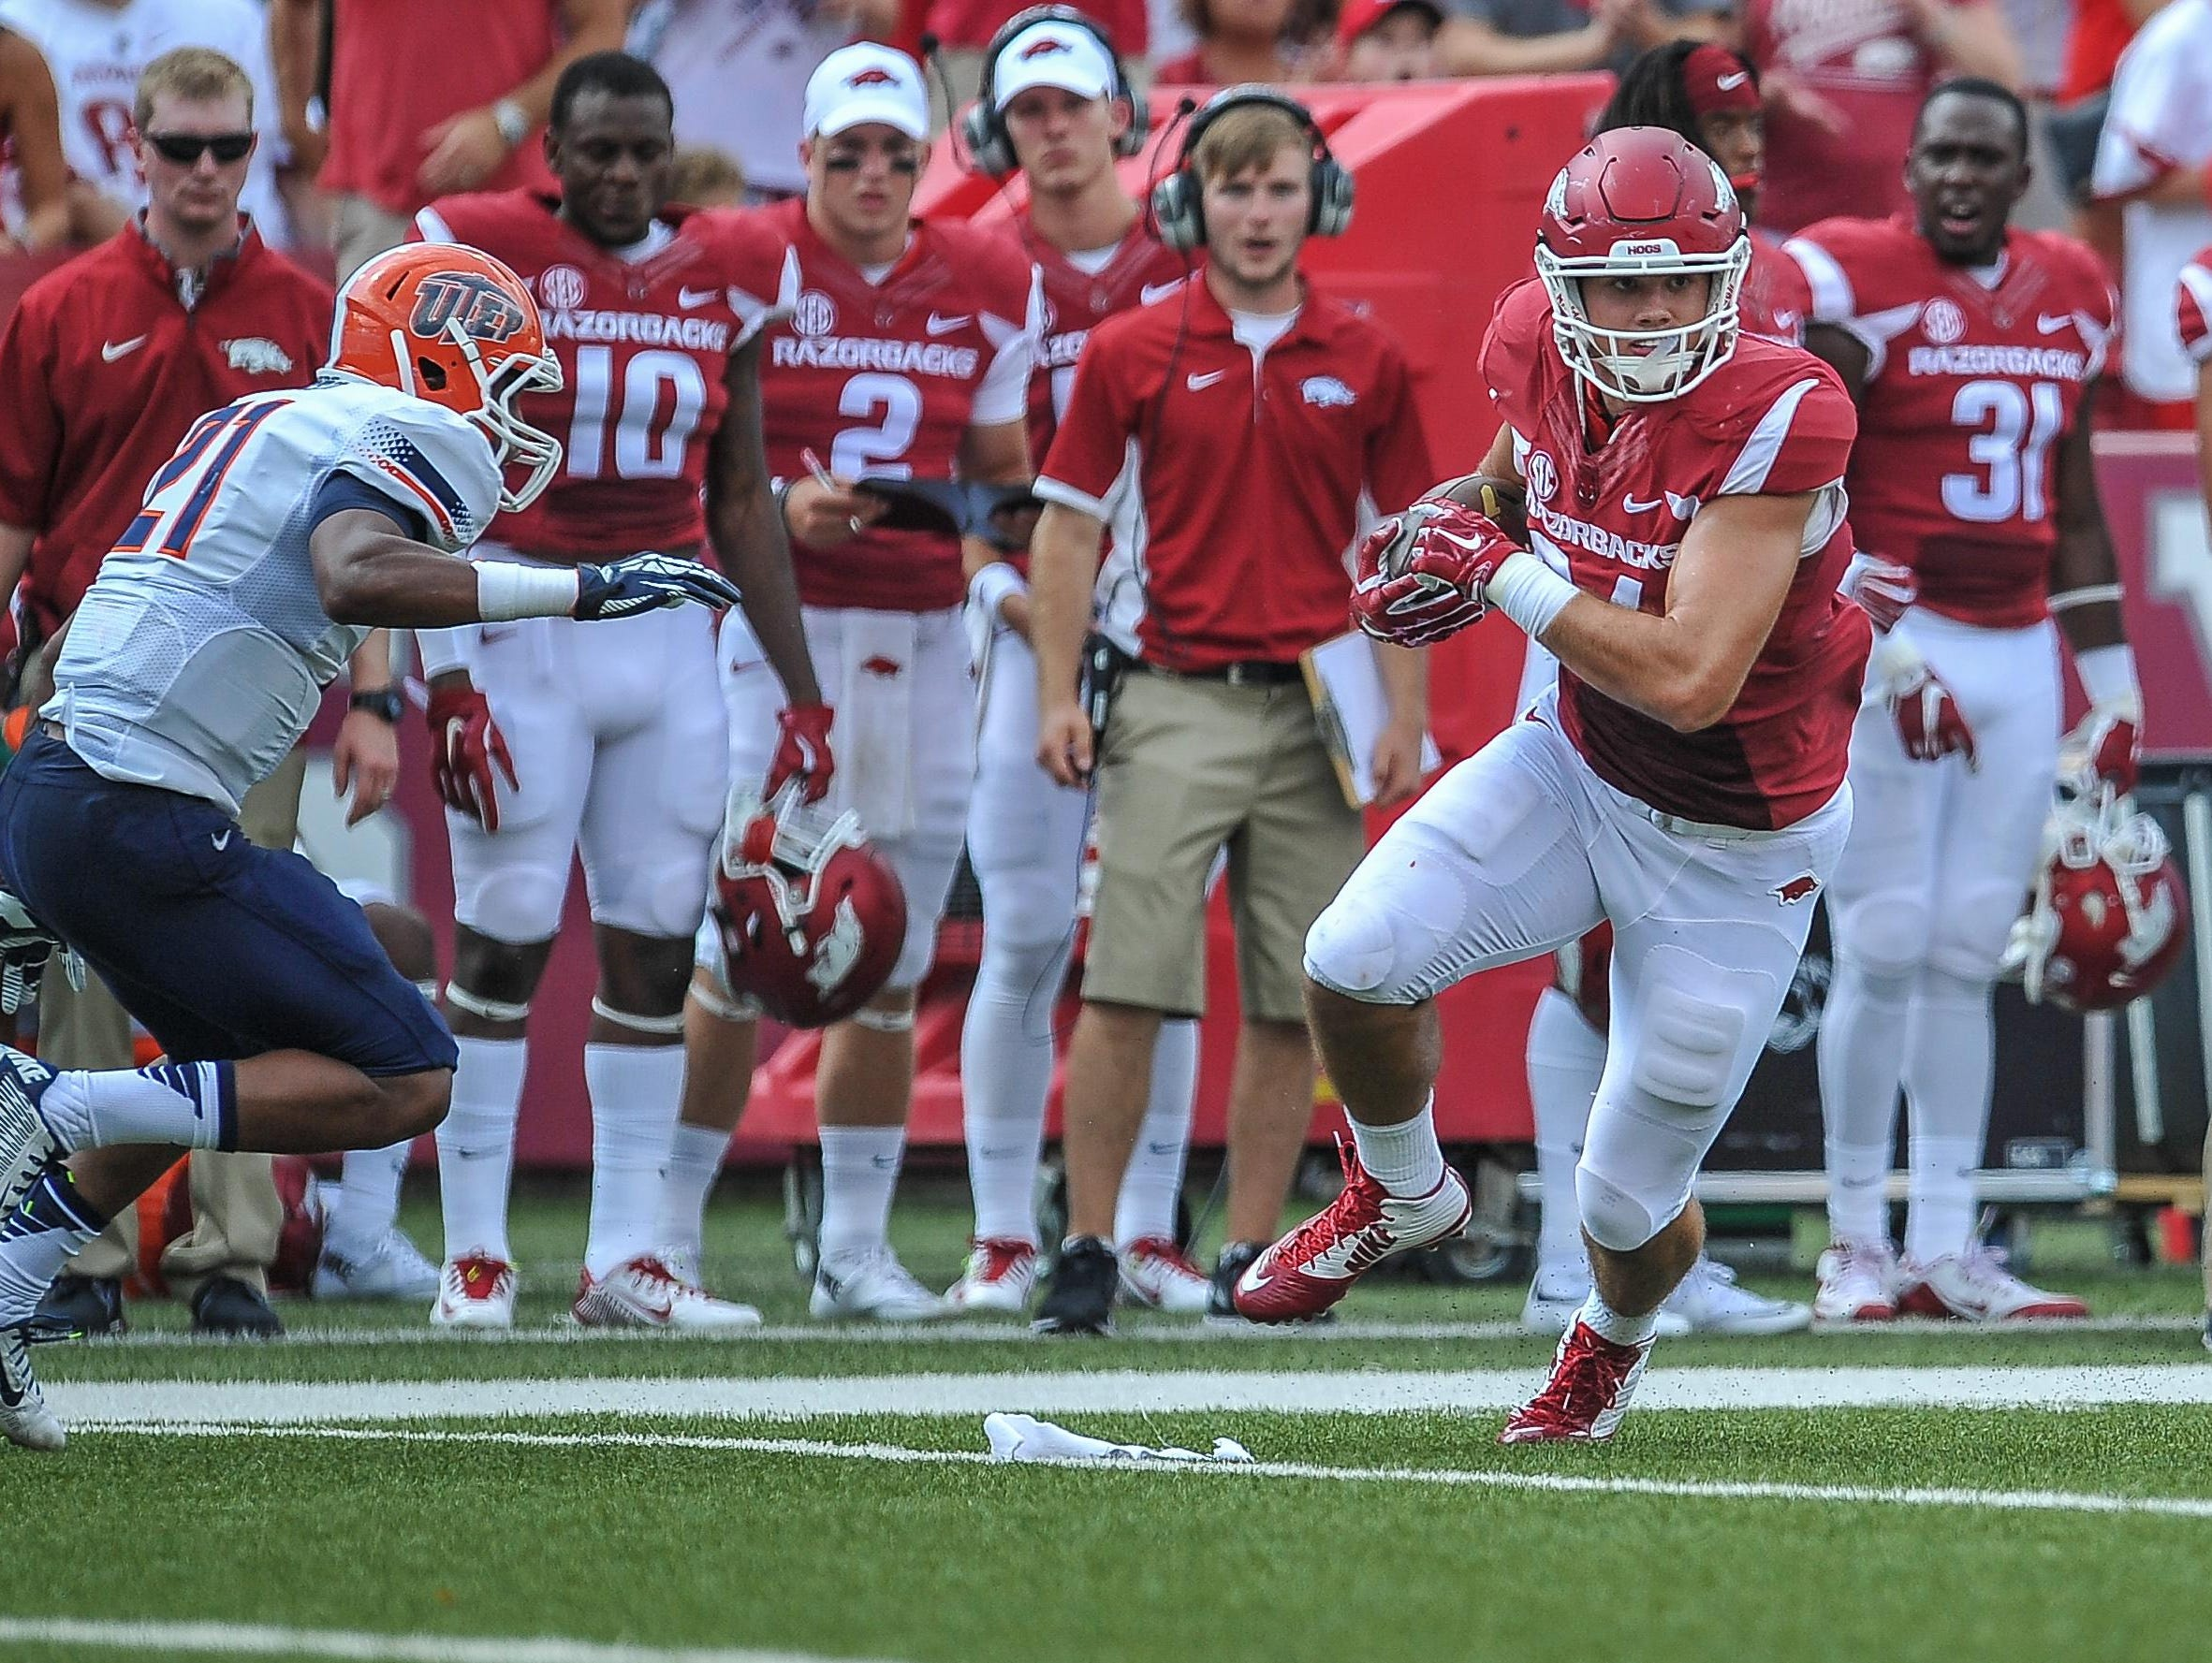 Twice an All-SEC selection, Hunter Henry opened the 2015 season with two catches for 42 yards in Arkansas' win over UTEP last Saturday at Reynolds Razorback Stadium.